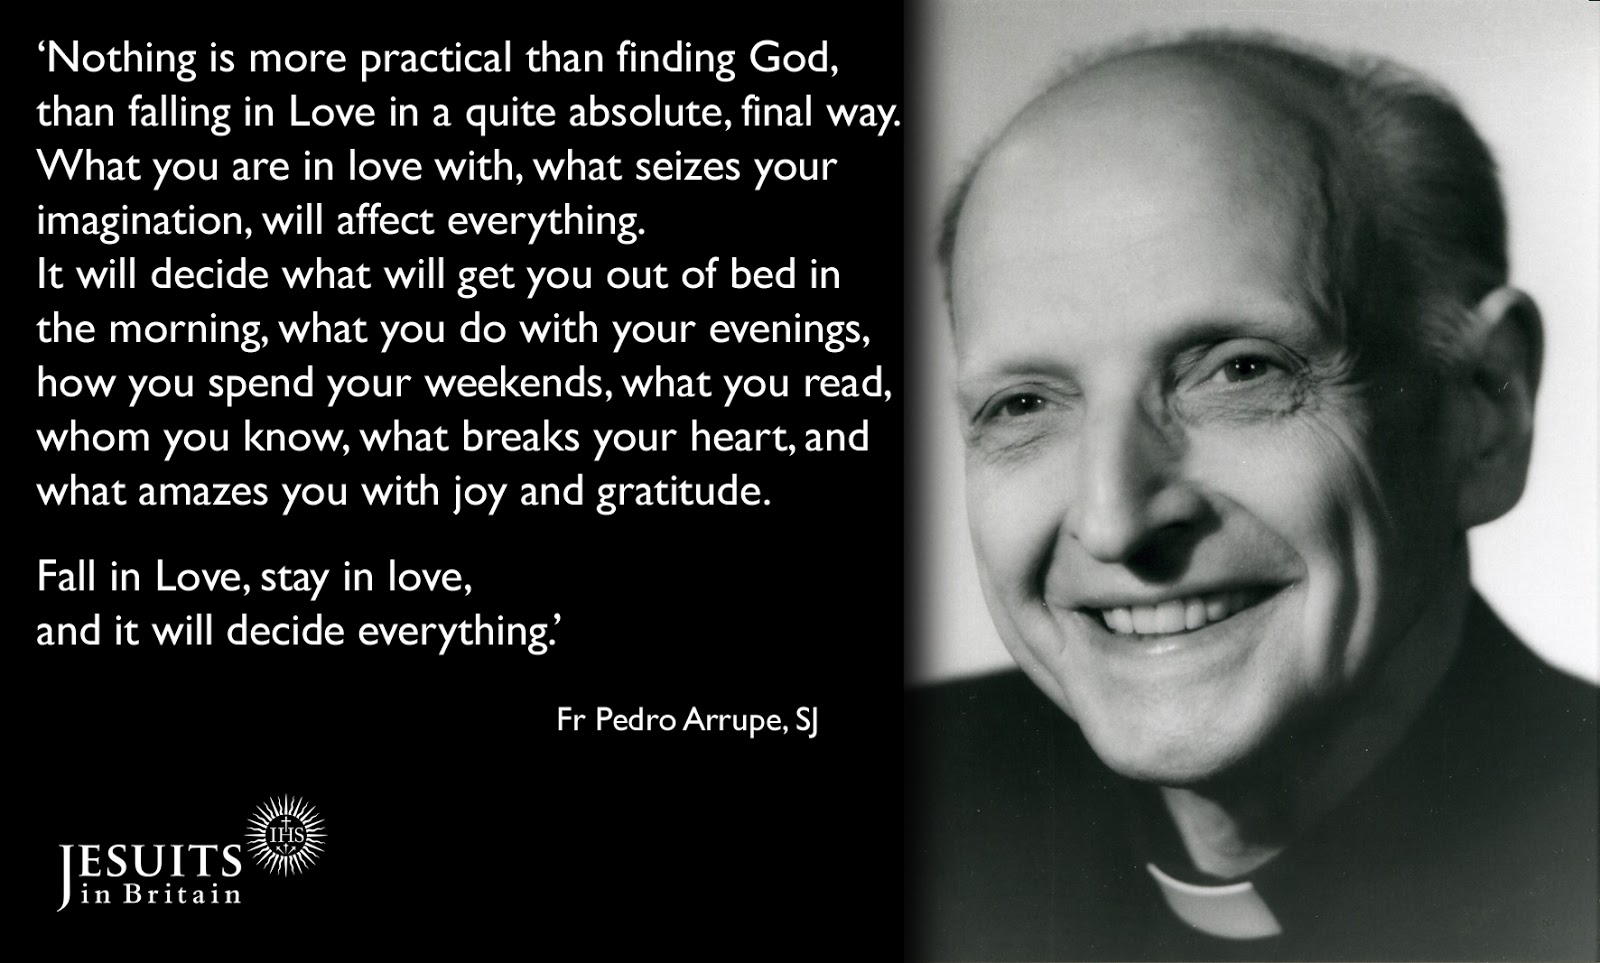 father pedro arrupe Pedro arrupe, sj, (14 november 1907 - 5 february 1991) was a spanish jesuit priest and basque from bilbao, spain, who served as the twenty-eighth superior general of the society of jesus (1965-83) stationed as novice master outside hiroshima in 1946, he used his medical background as a first.